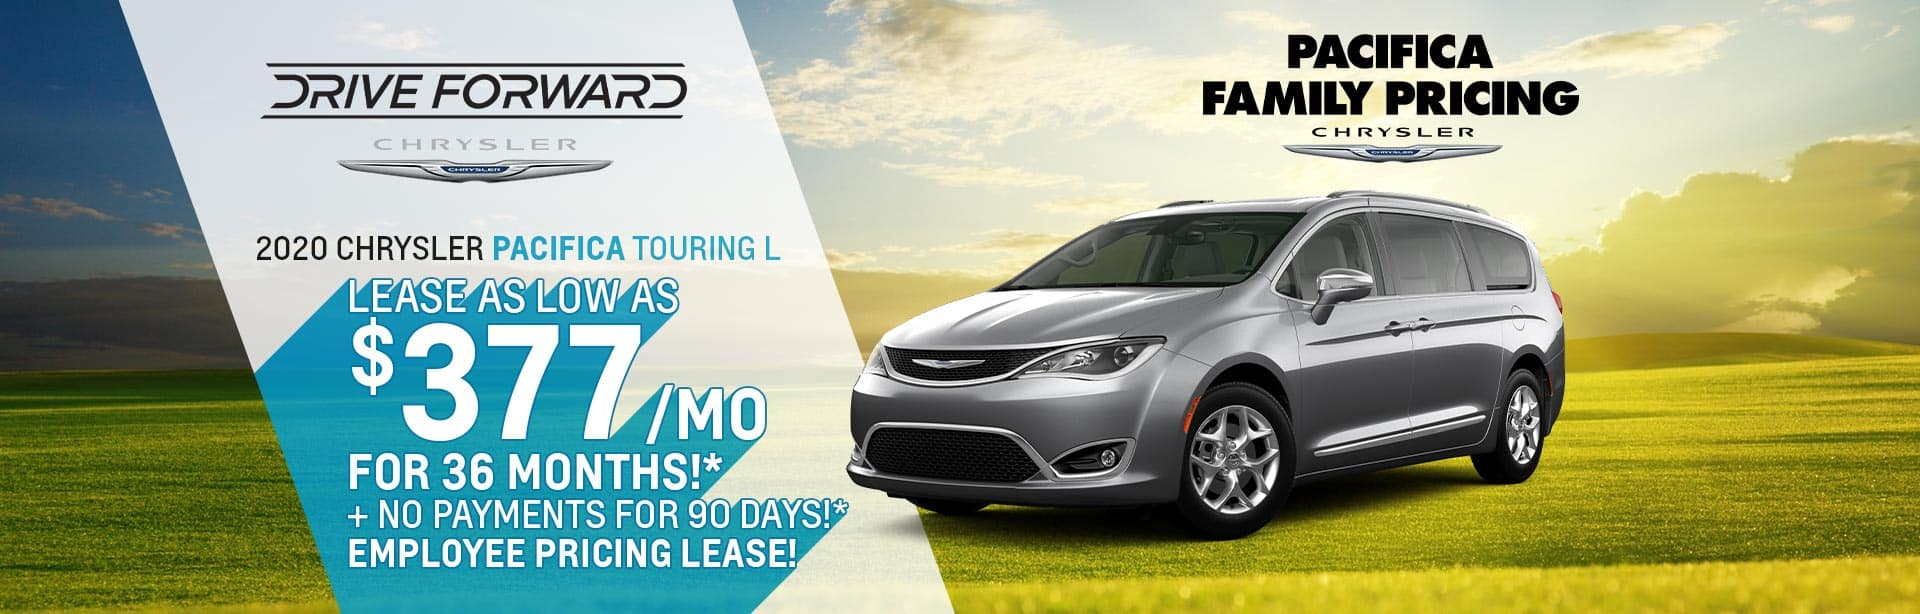 Lease deal on a New Chrysler Pacifica near Lafayette, Indiana